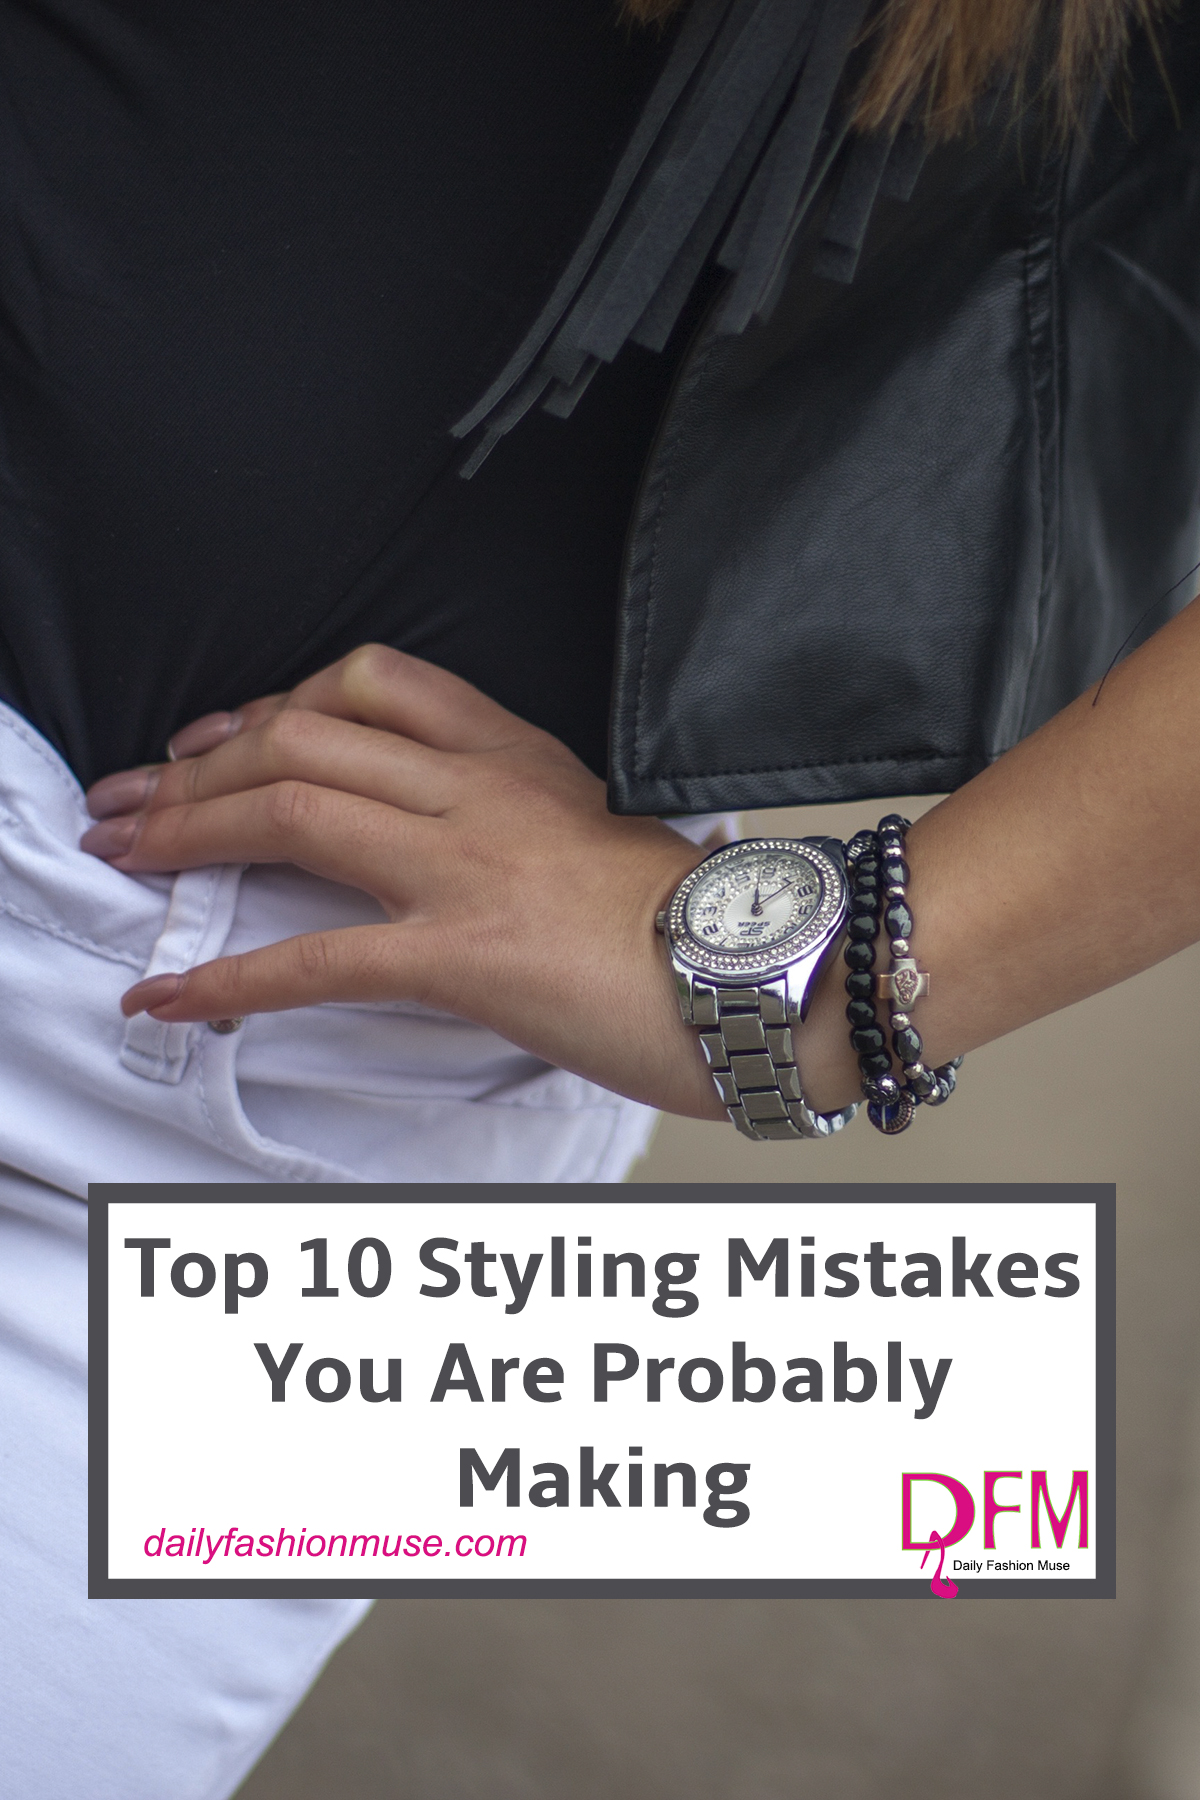 There are a slew of styling mistakes that women make. Here are my top 10 styling mistakes and how to fix them taking your fashion game to the next level.